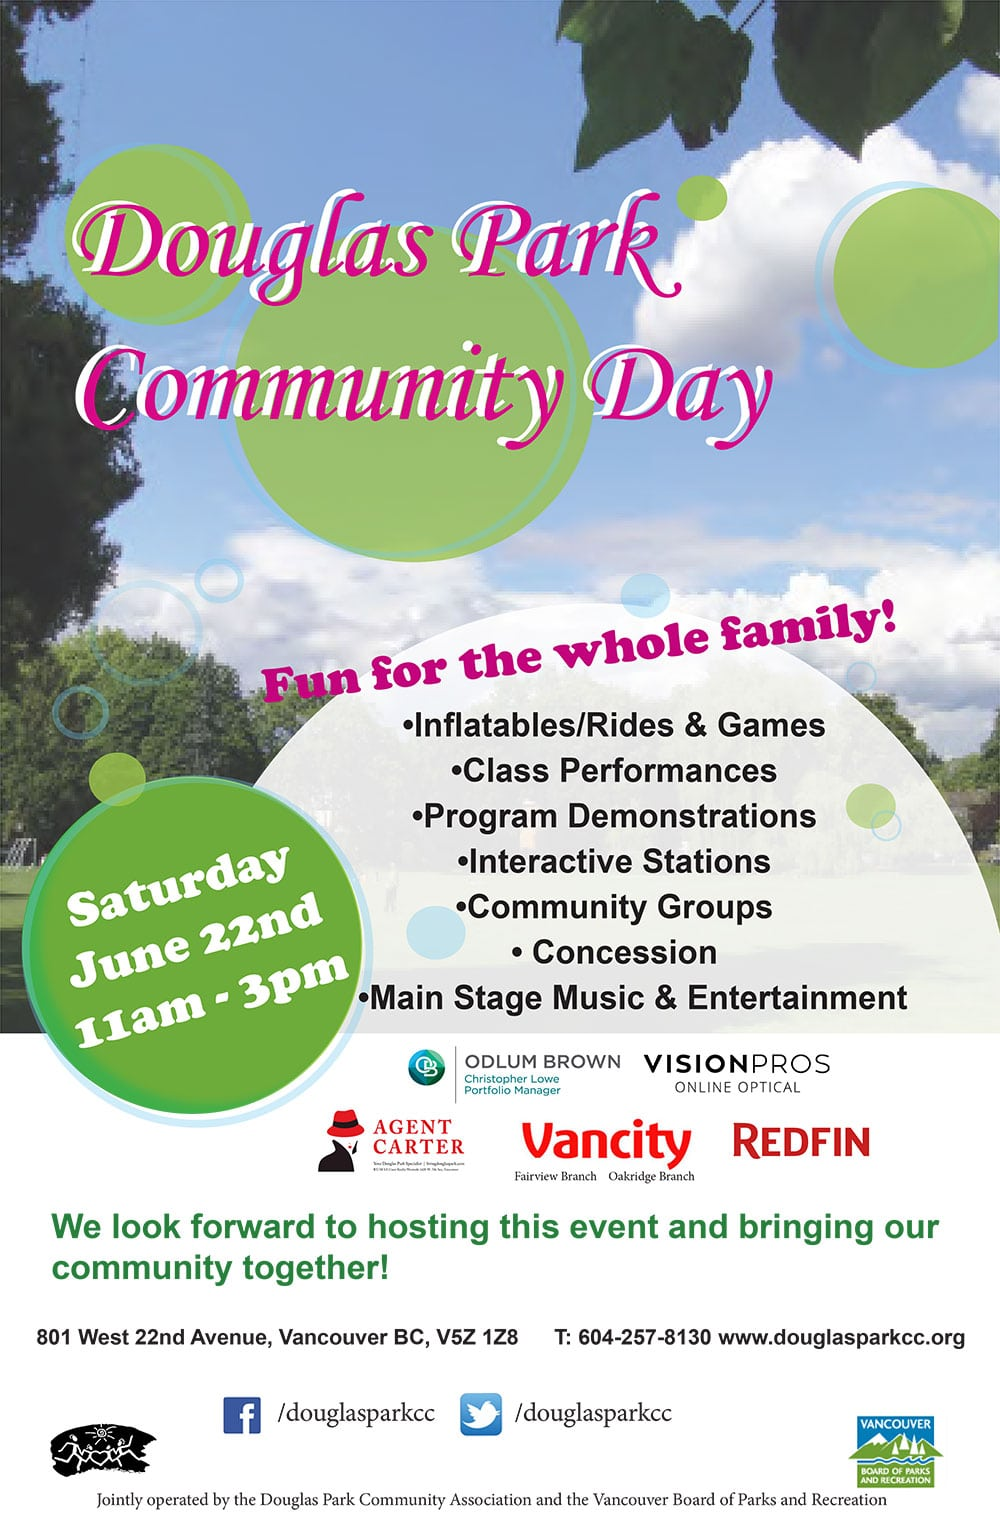 It's time for Douglas Park's annual Community Day! From 11am - 3pm on June 22nd, we'll have an abundance of family-friendly activities at the Community Centre, rain or shine. Festivities will include stage performances, inflatables, carnival games, concession, community booths and much more.